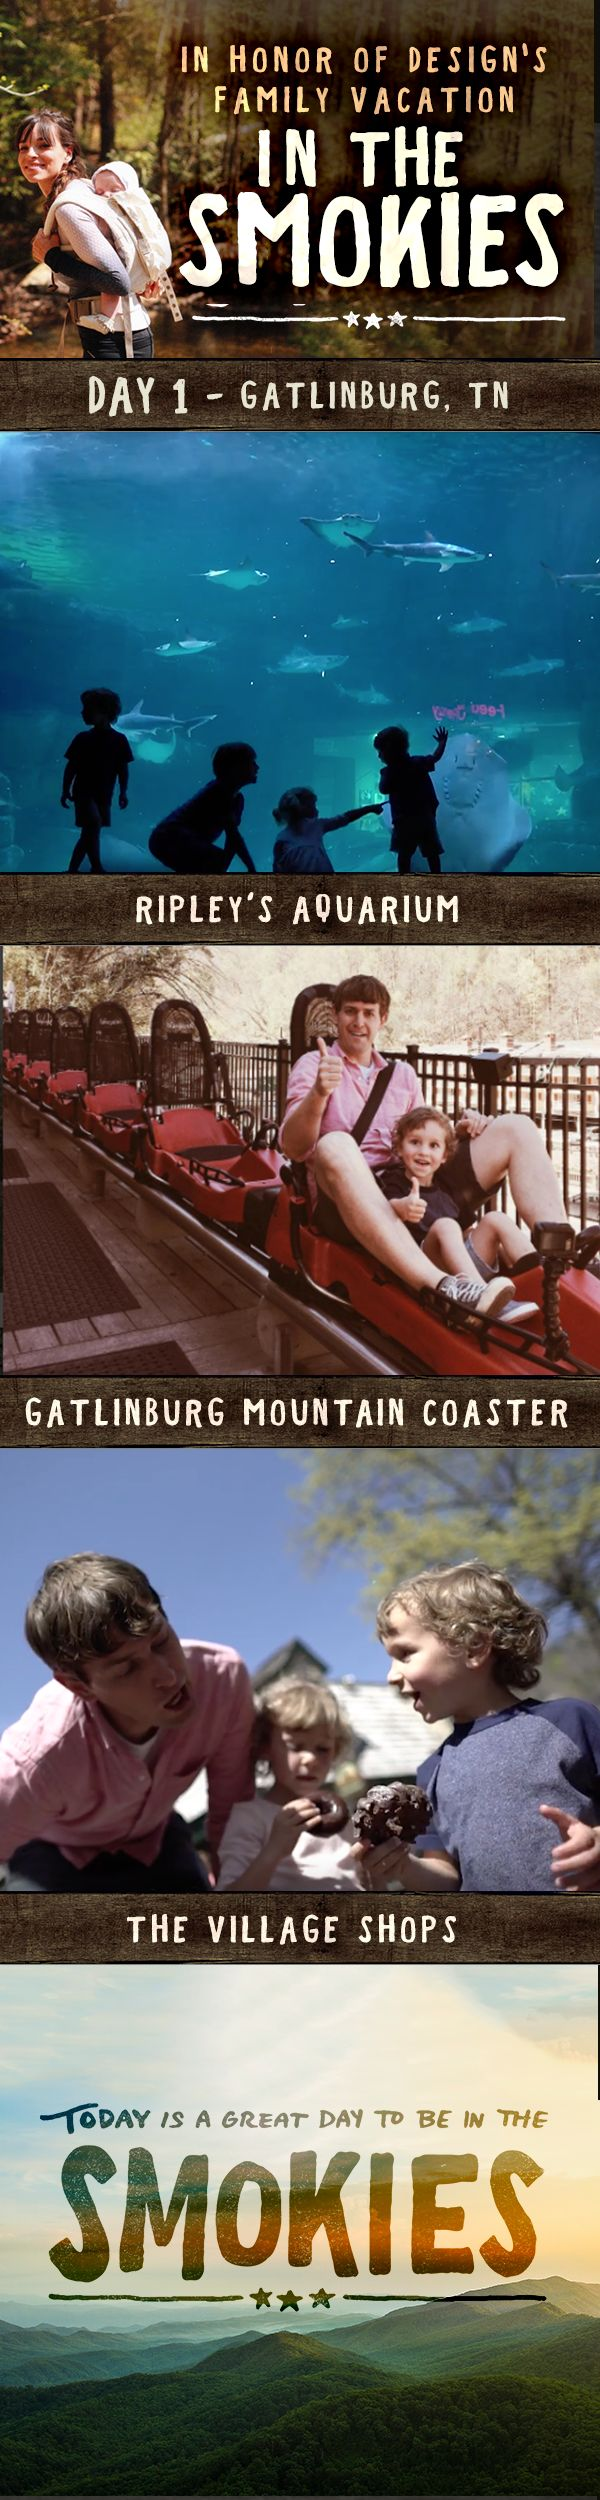 In Honor of Design's Family Vacation in the Smokies. Day 1 – Gatlinburg, TN @inhonorofdesign